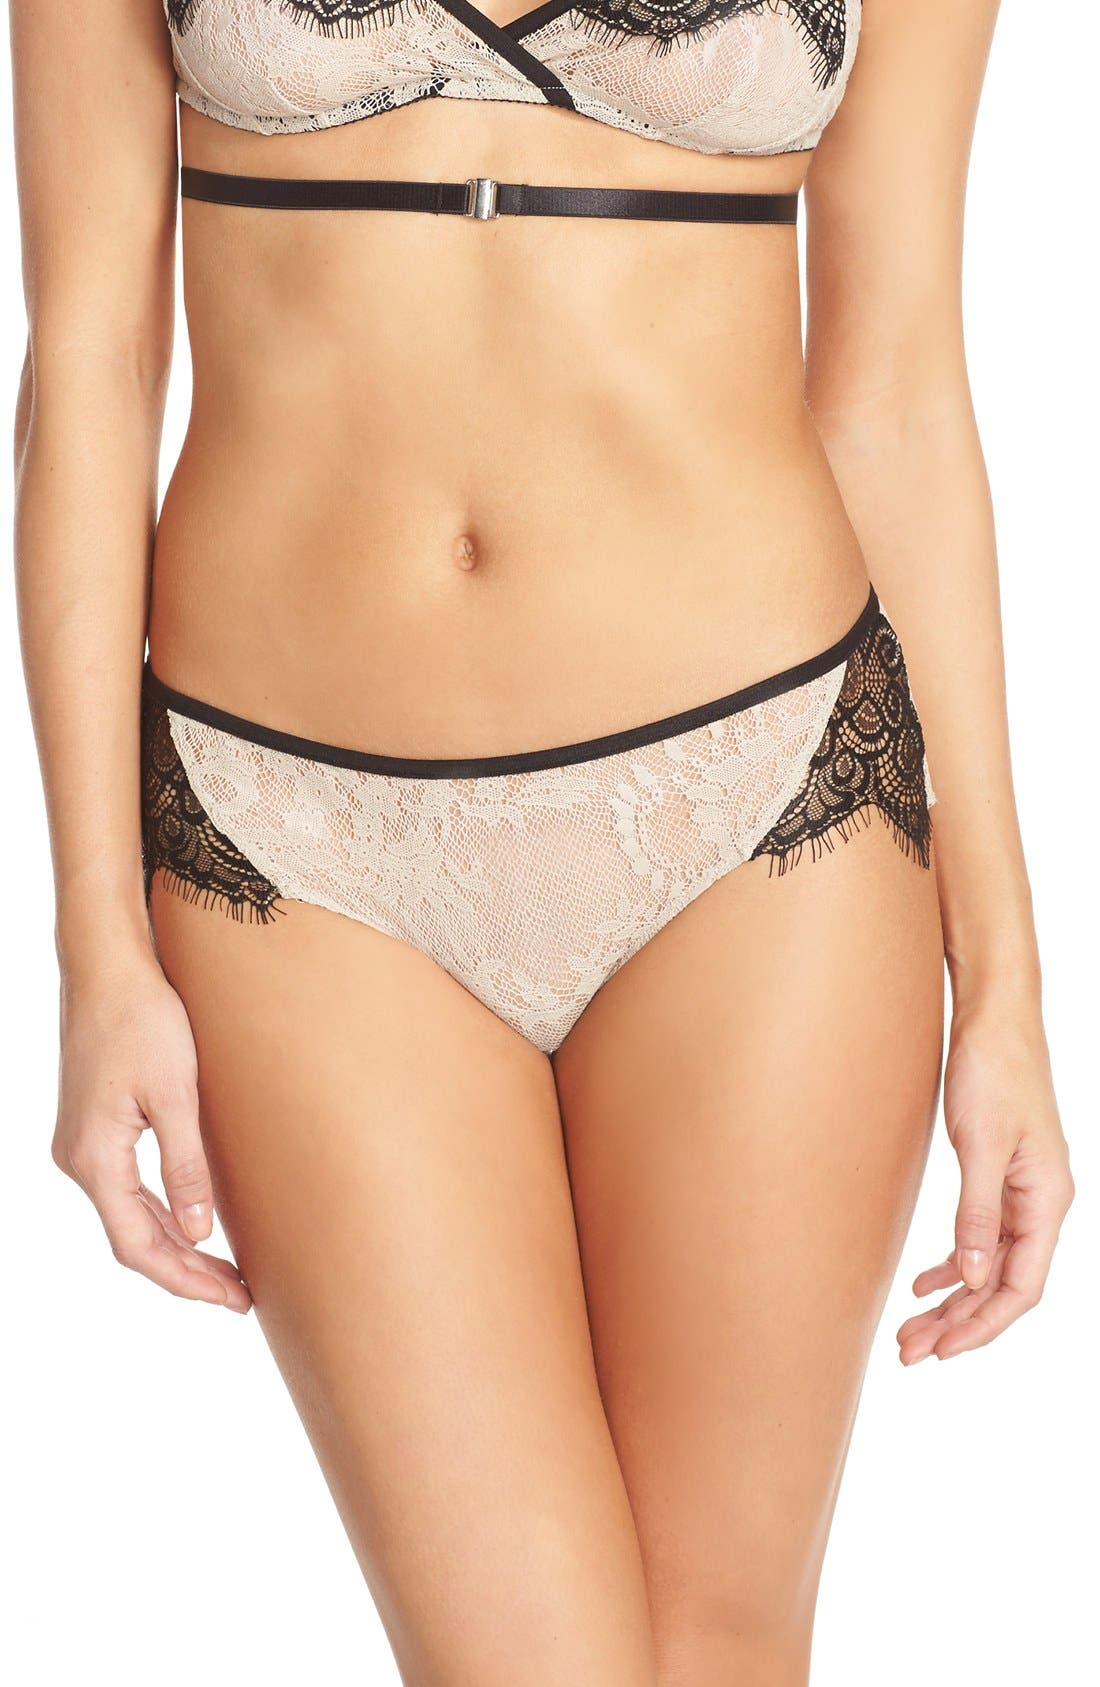 ONLY HEARTS 'Knaughty Knickers' Hipster Briefs, Main, color, 250